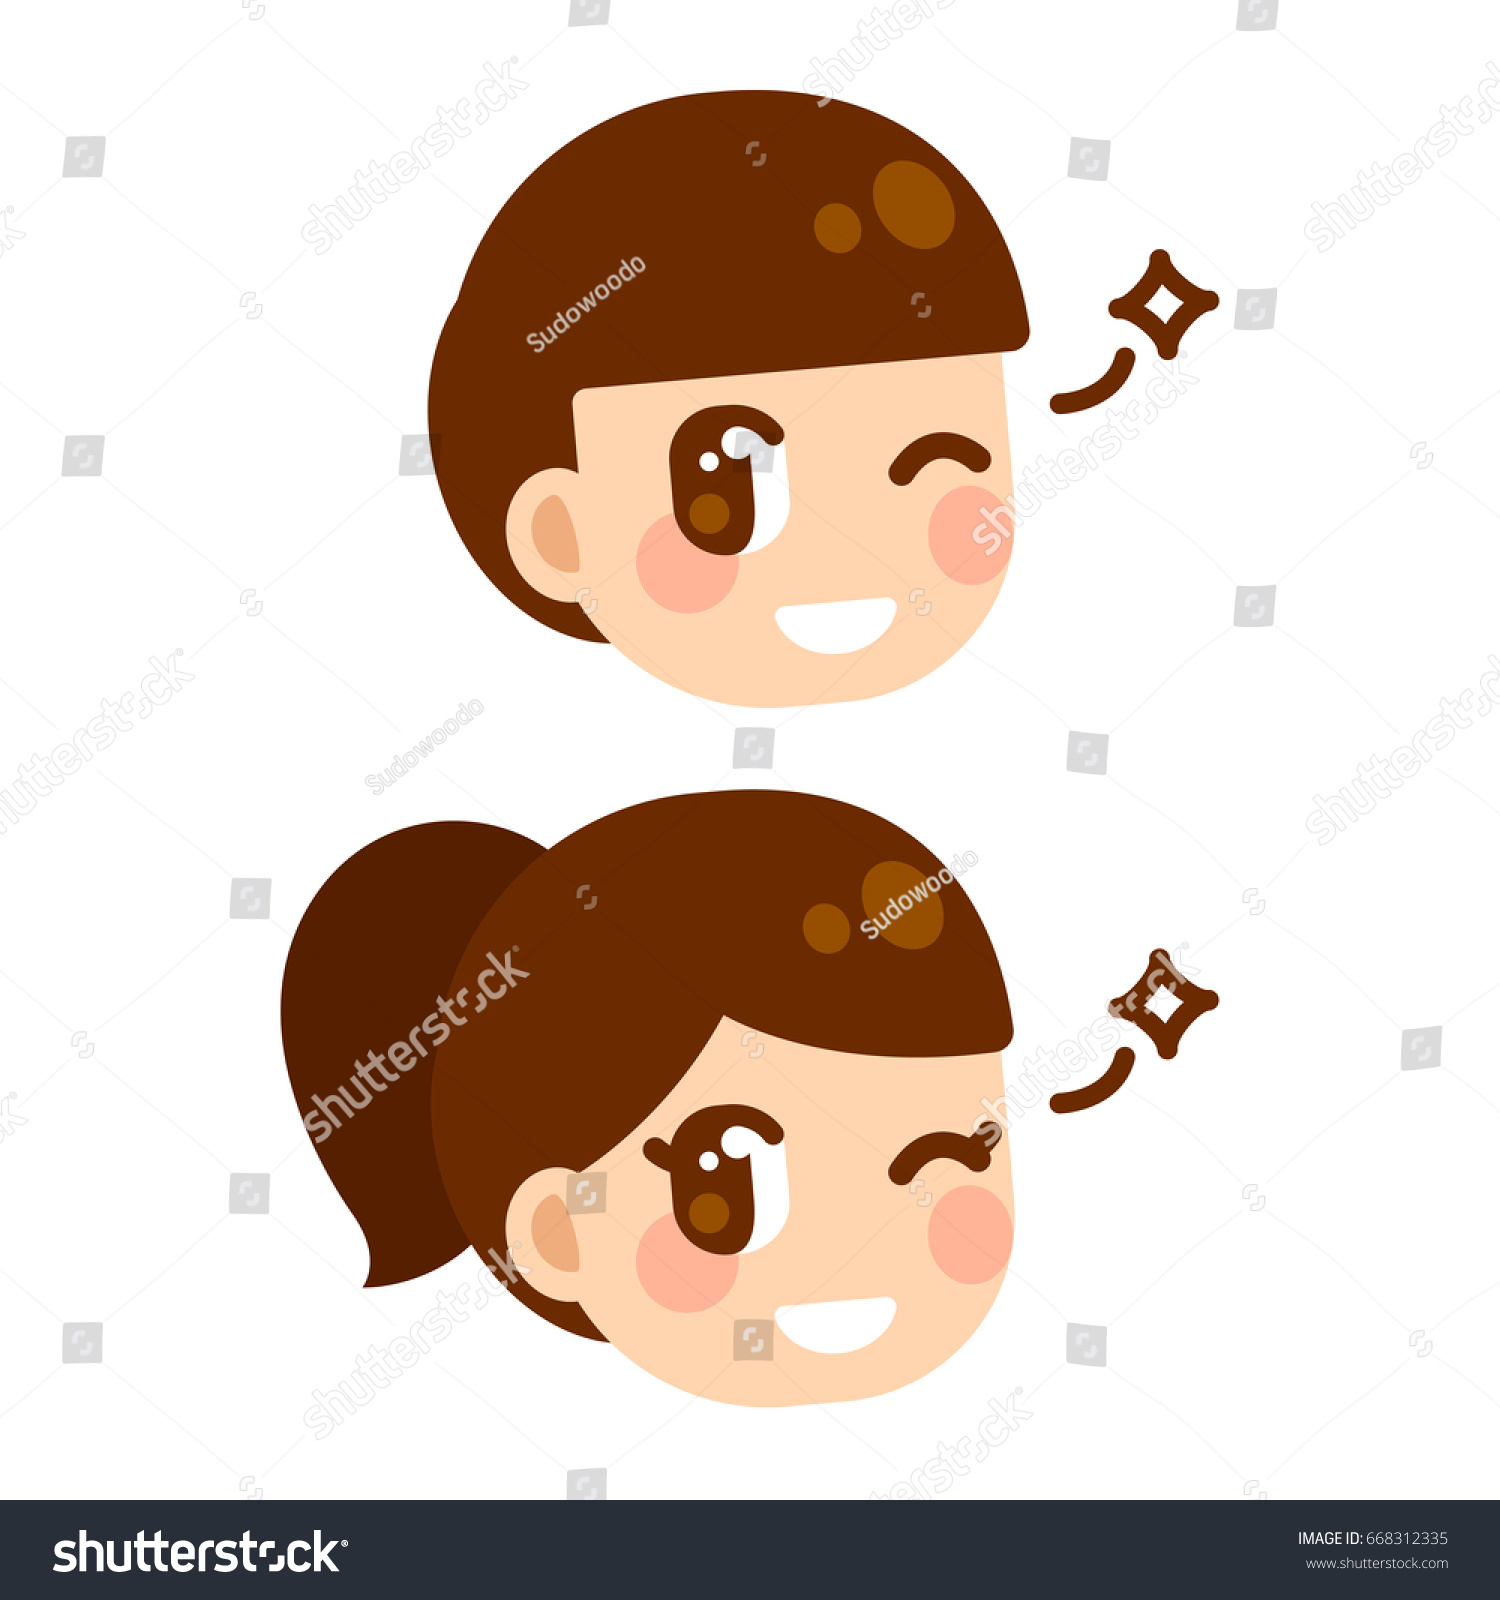 Cute Anime Children Winking Boy And Girl Character Face Manga Style Cartoon Illustration